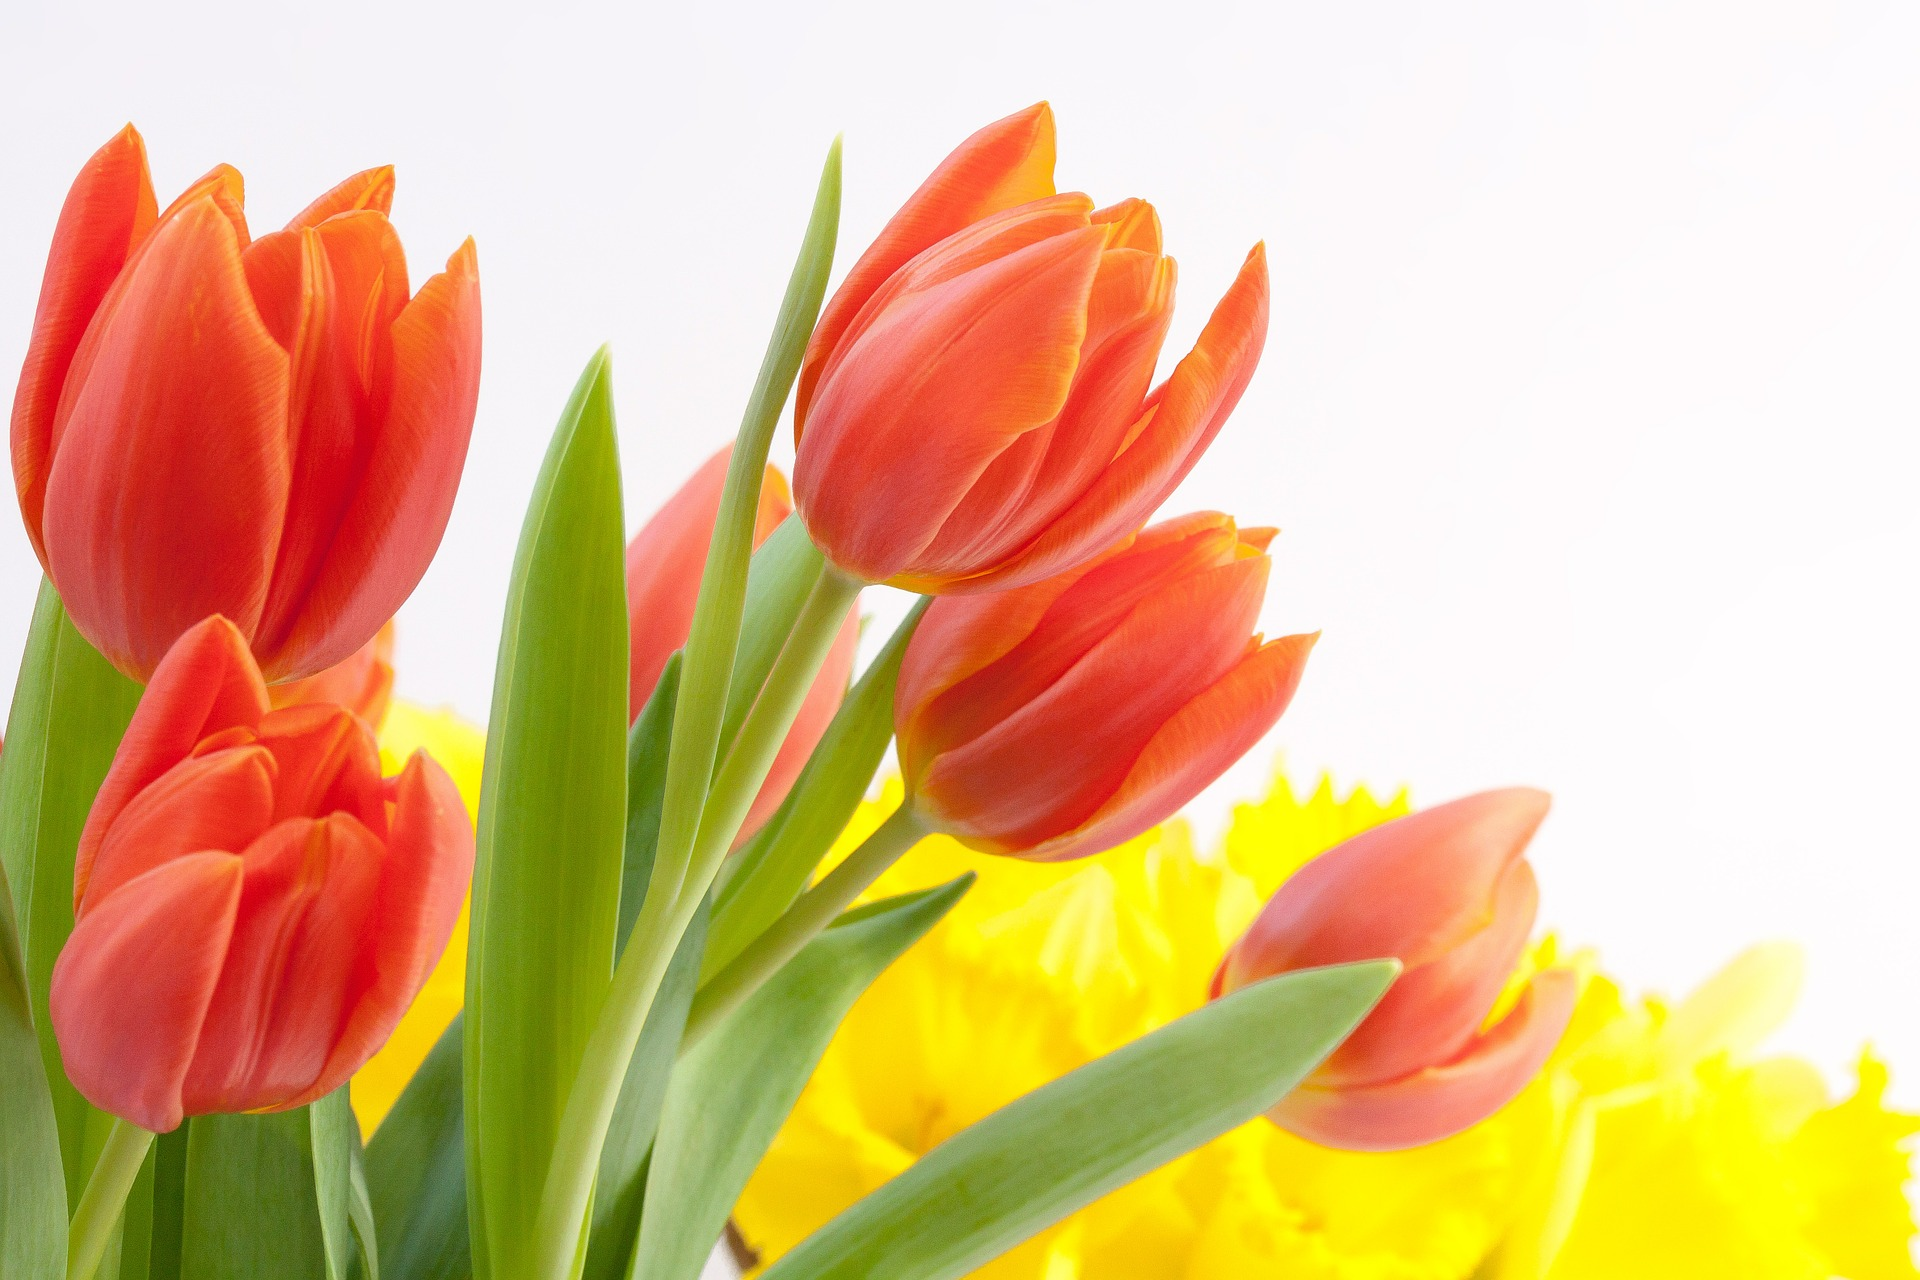 Tulips make an ideal Valentine's Day gift for our beloved.